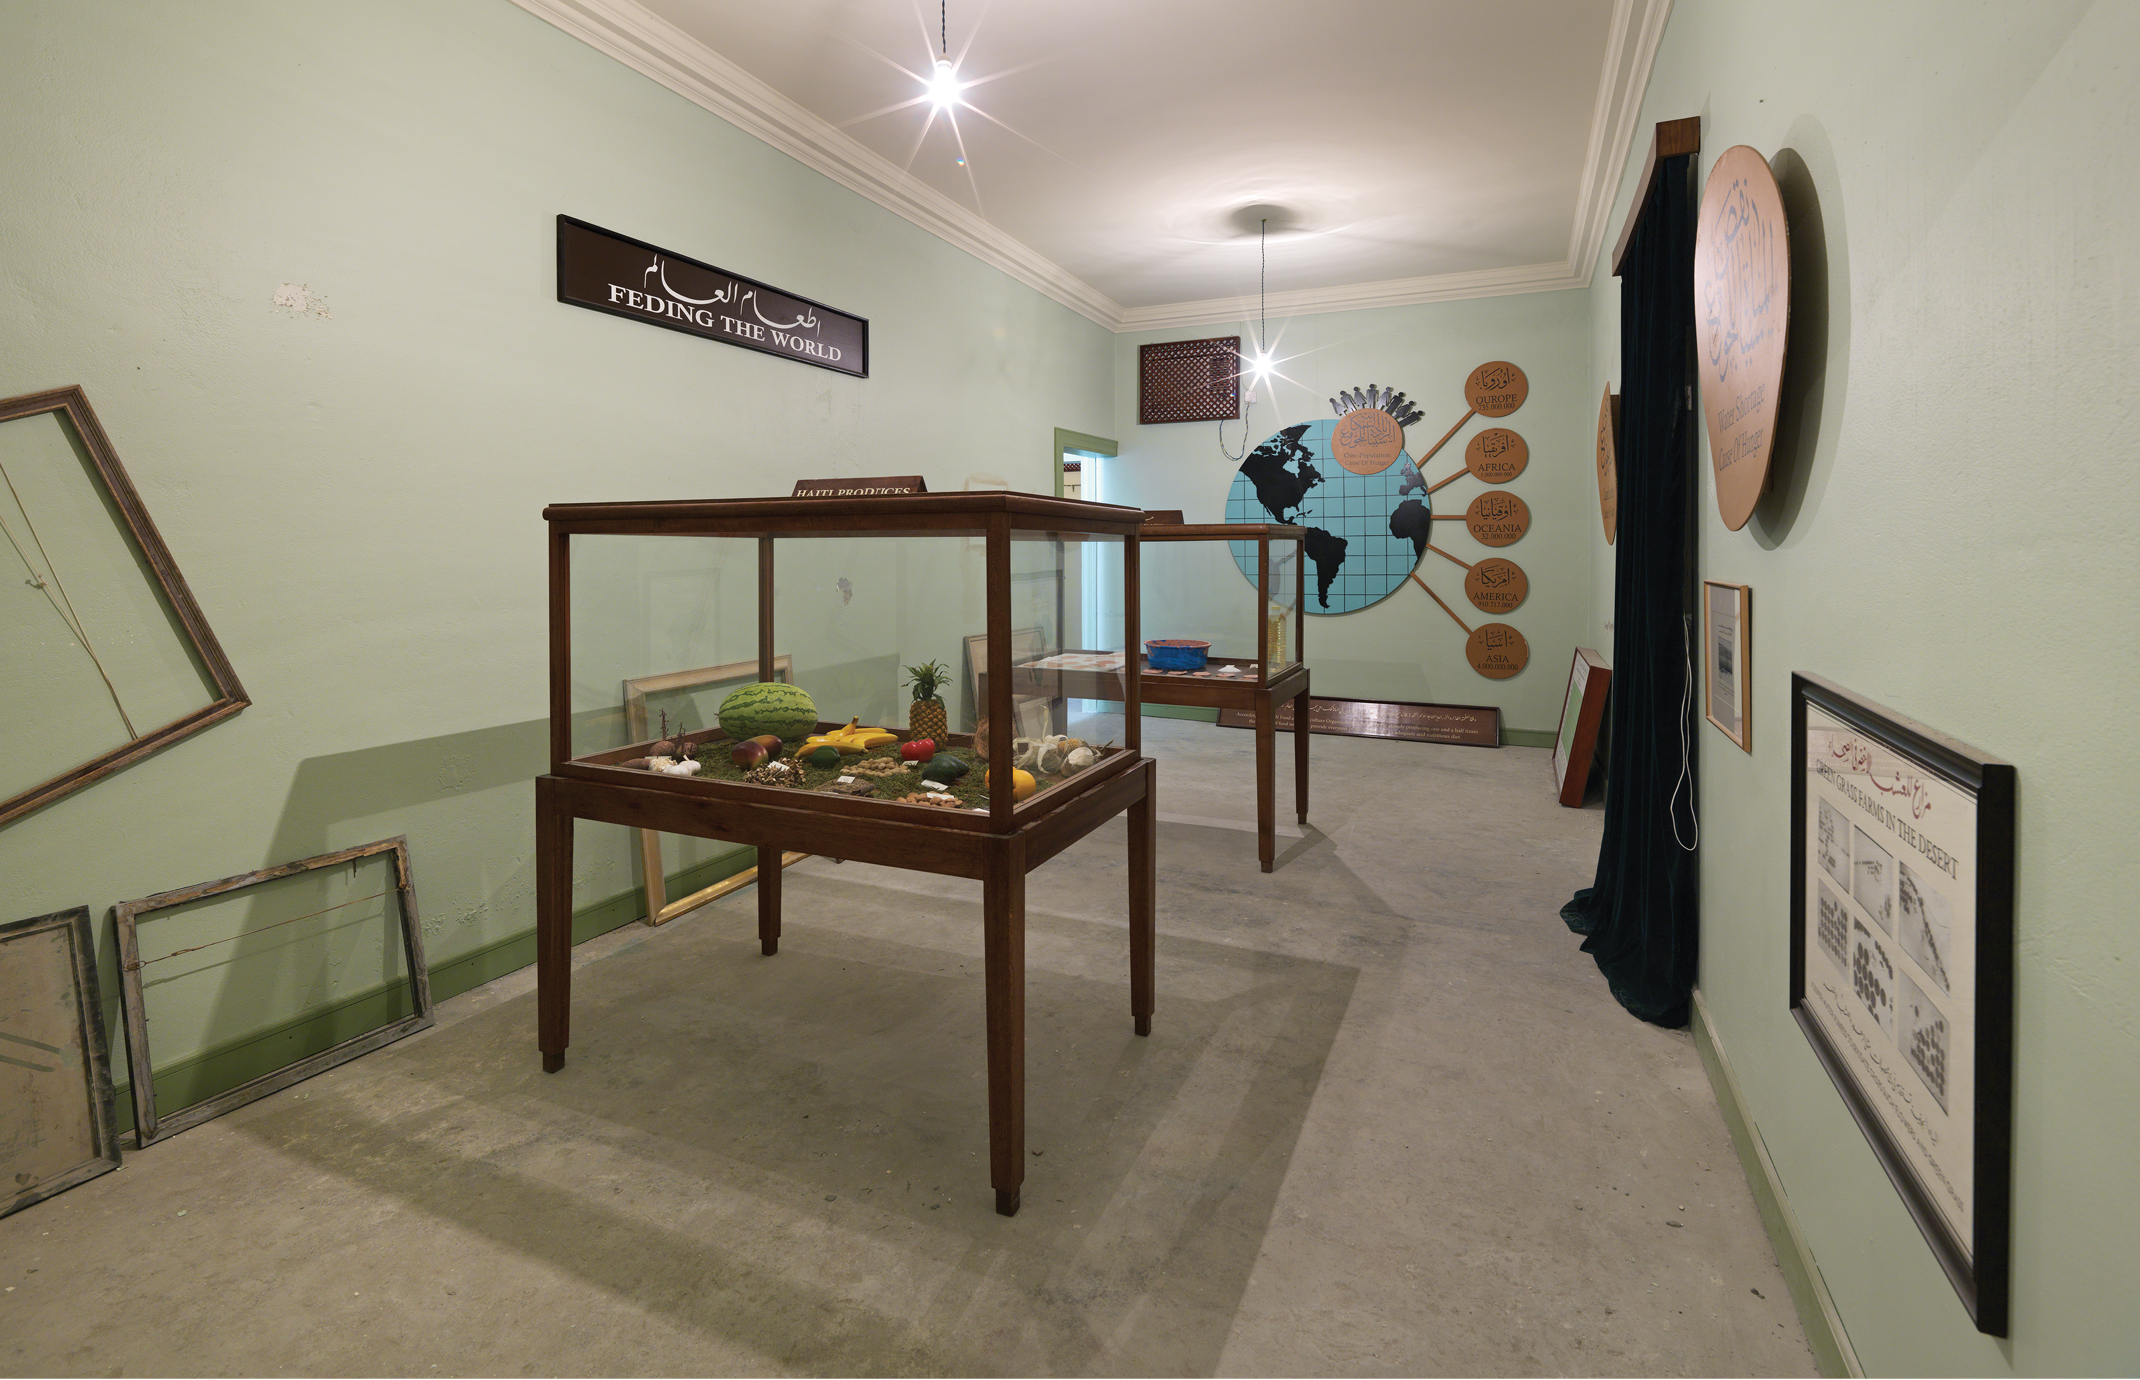 WAM (World Agriculture Museum) Image